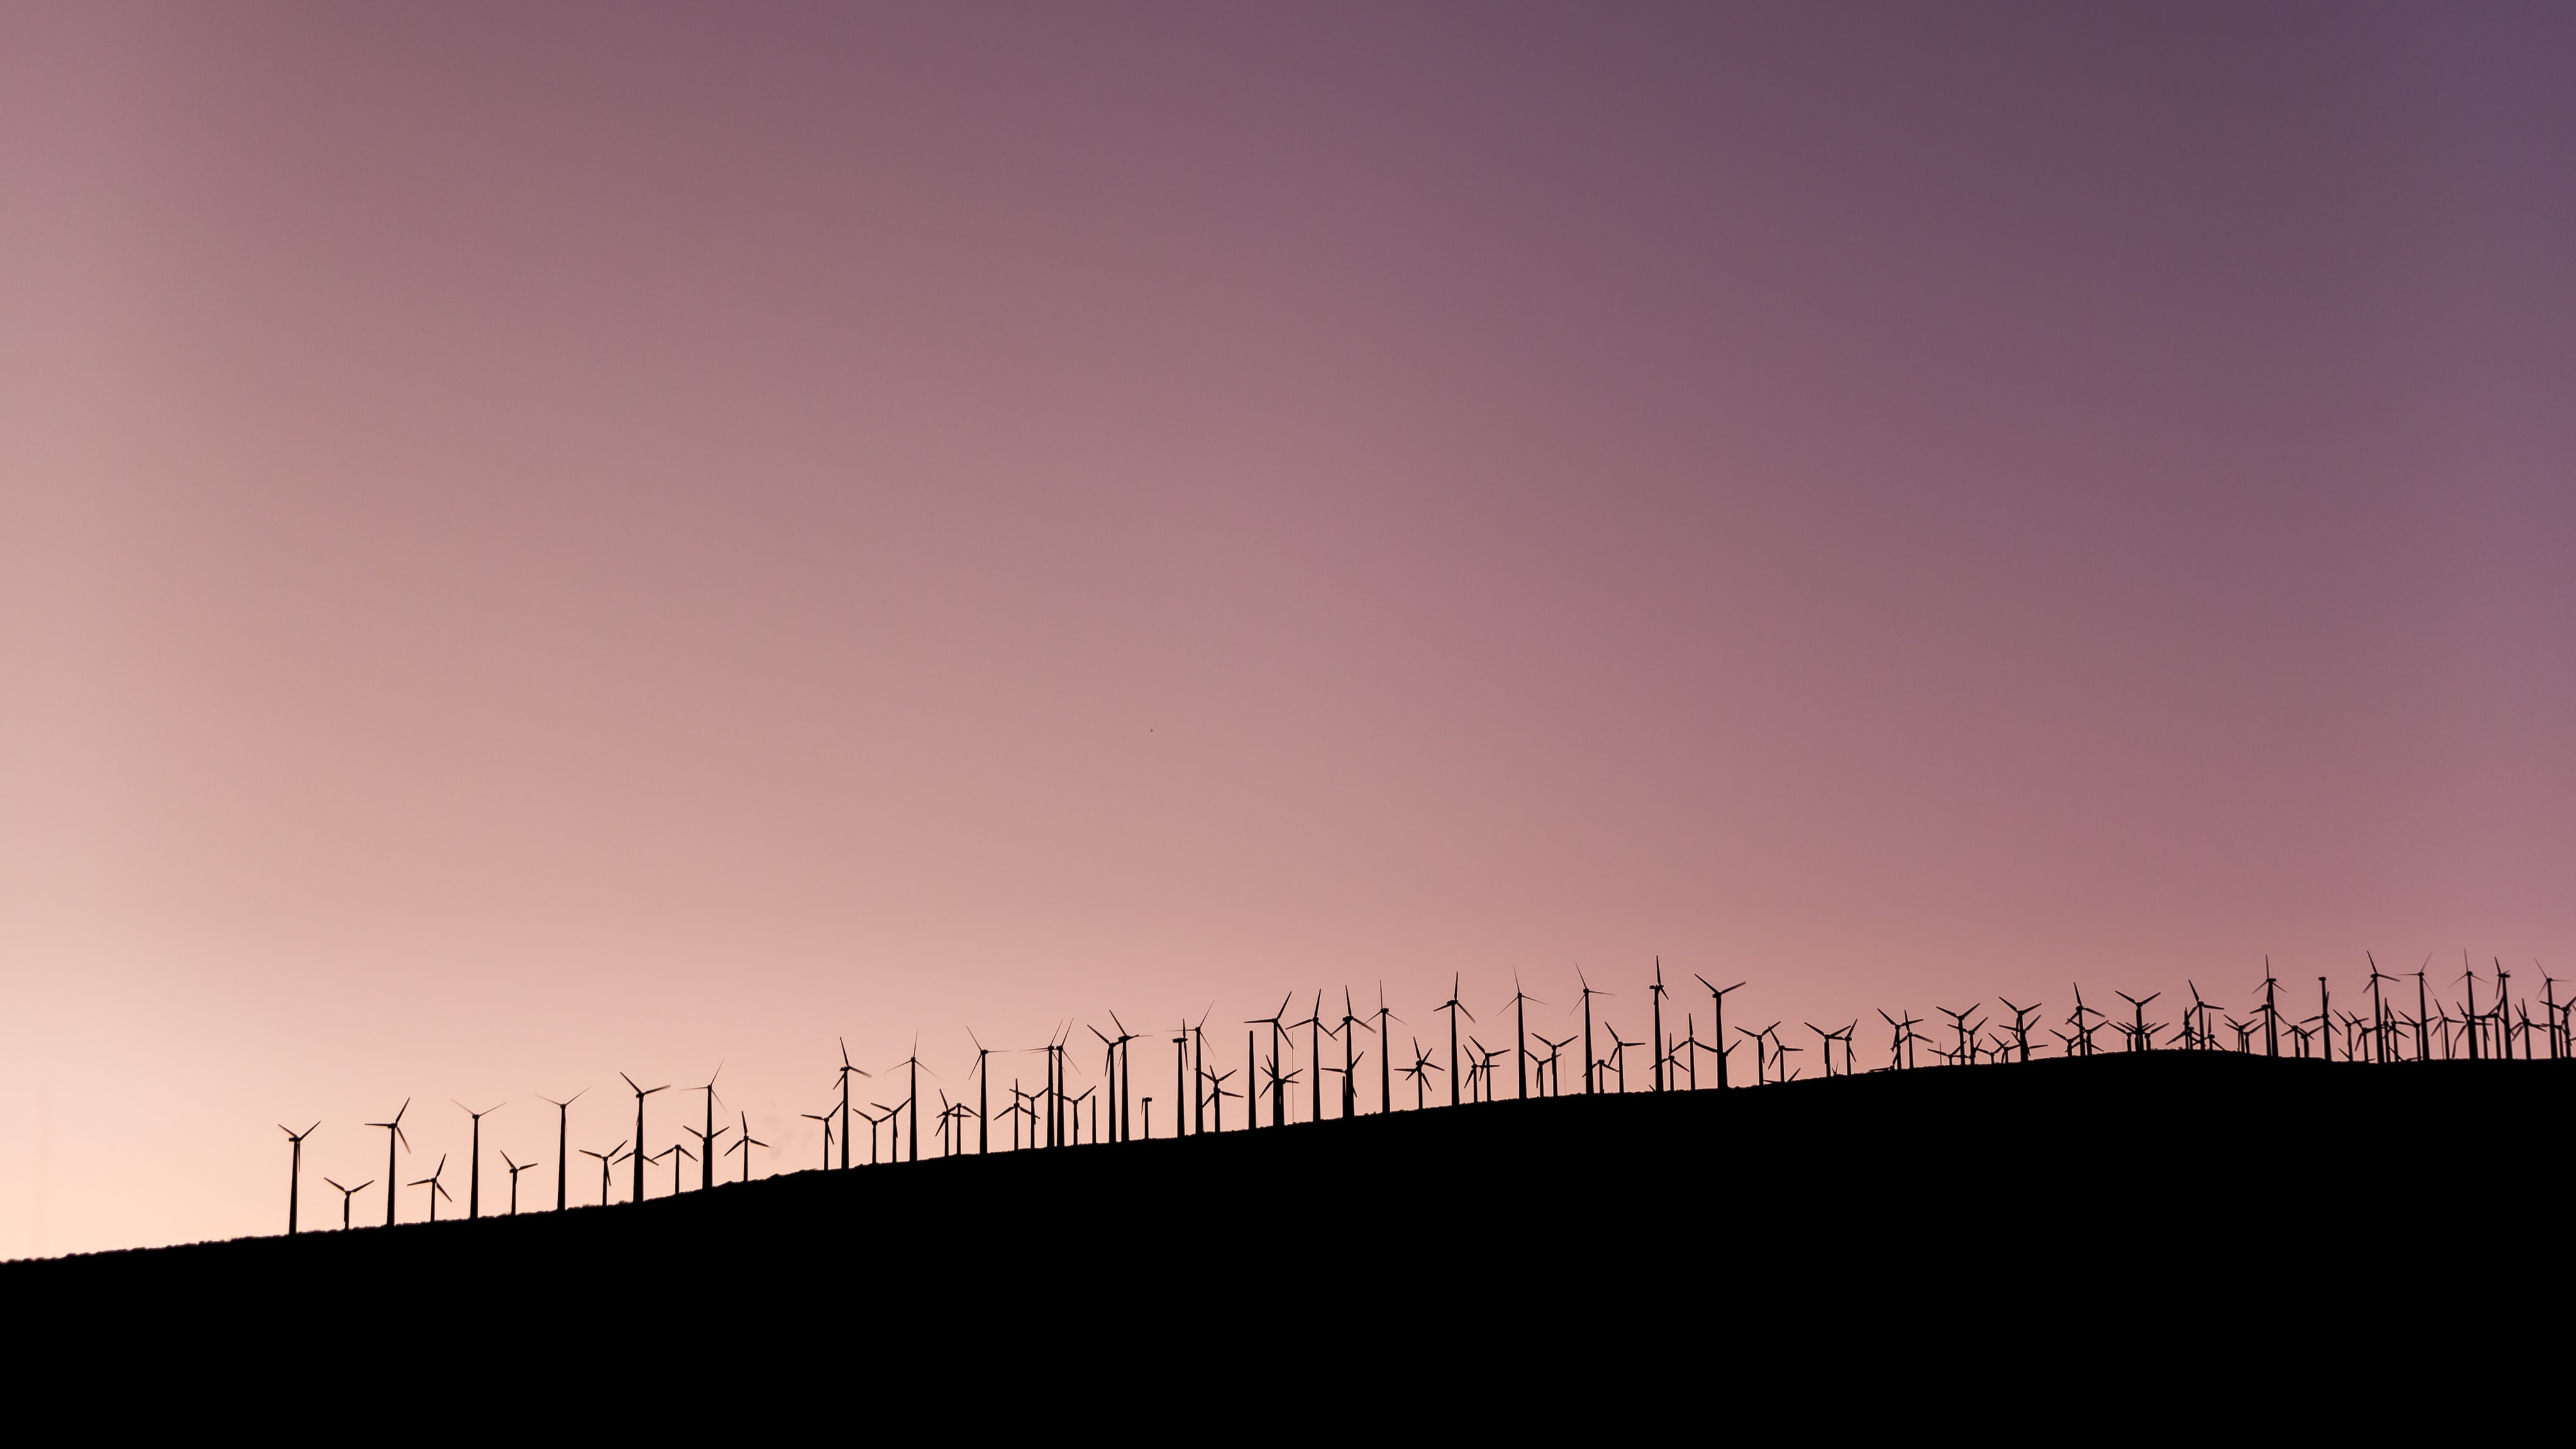 silhouette of wind turbines during daytime